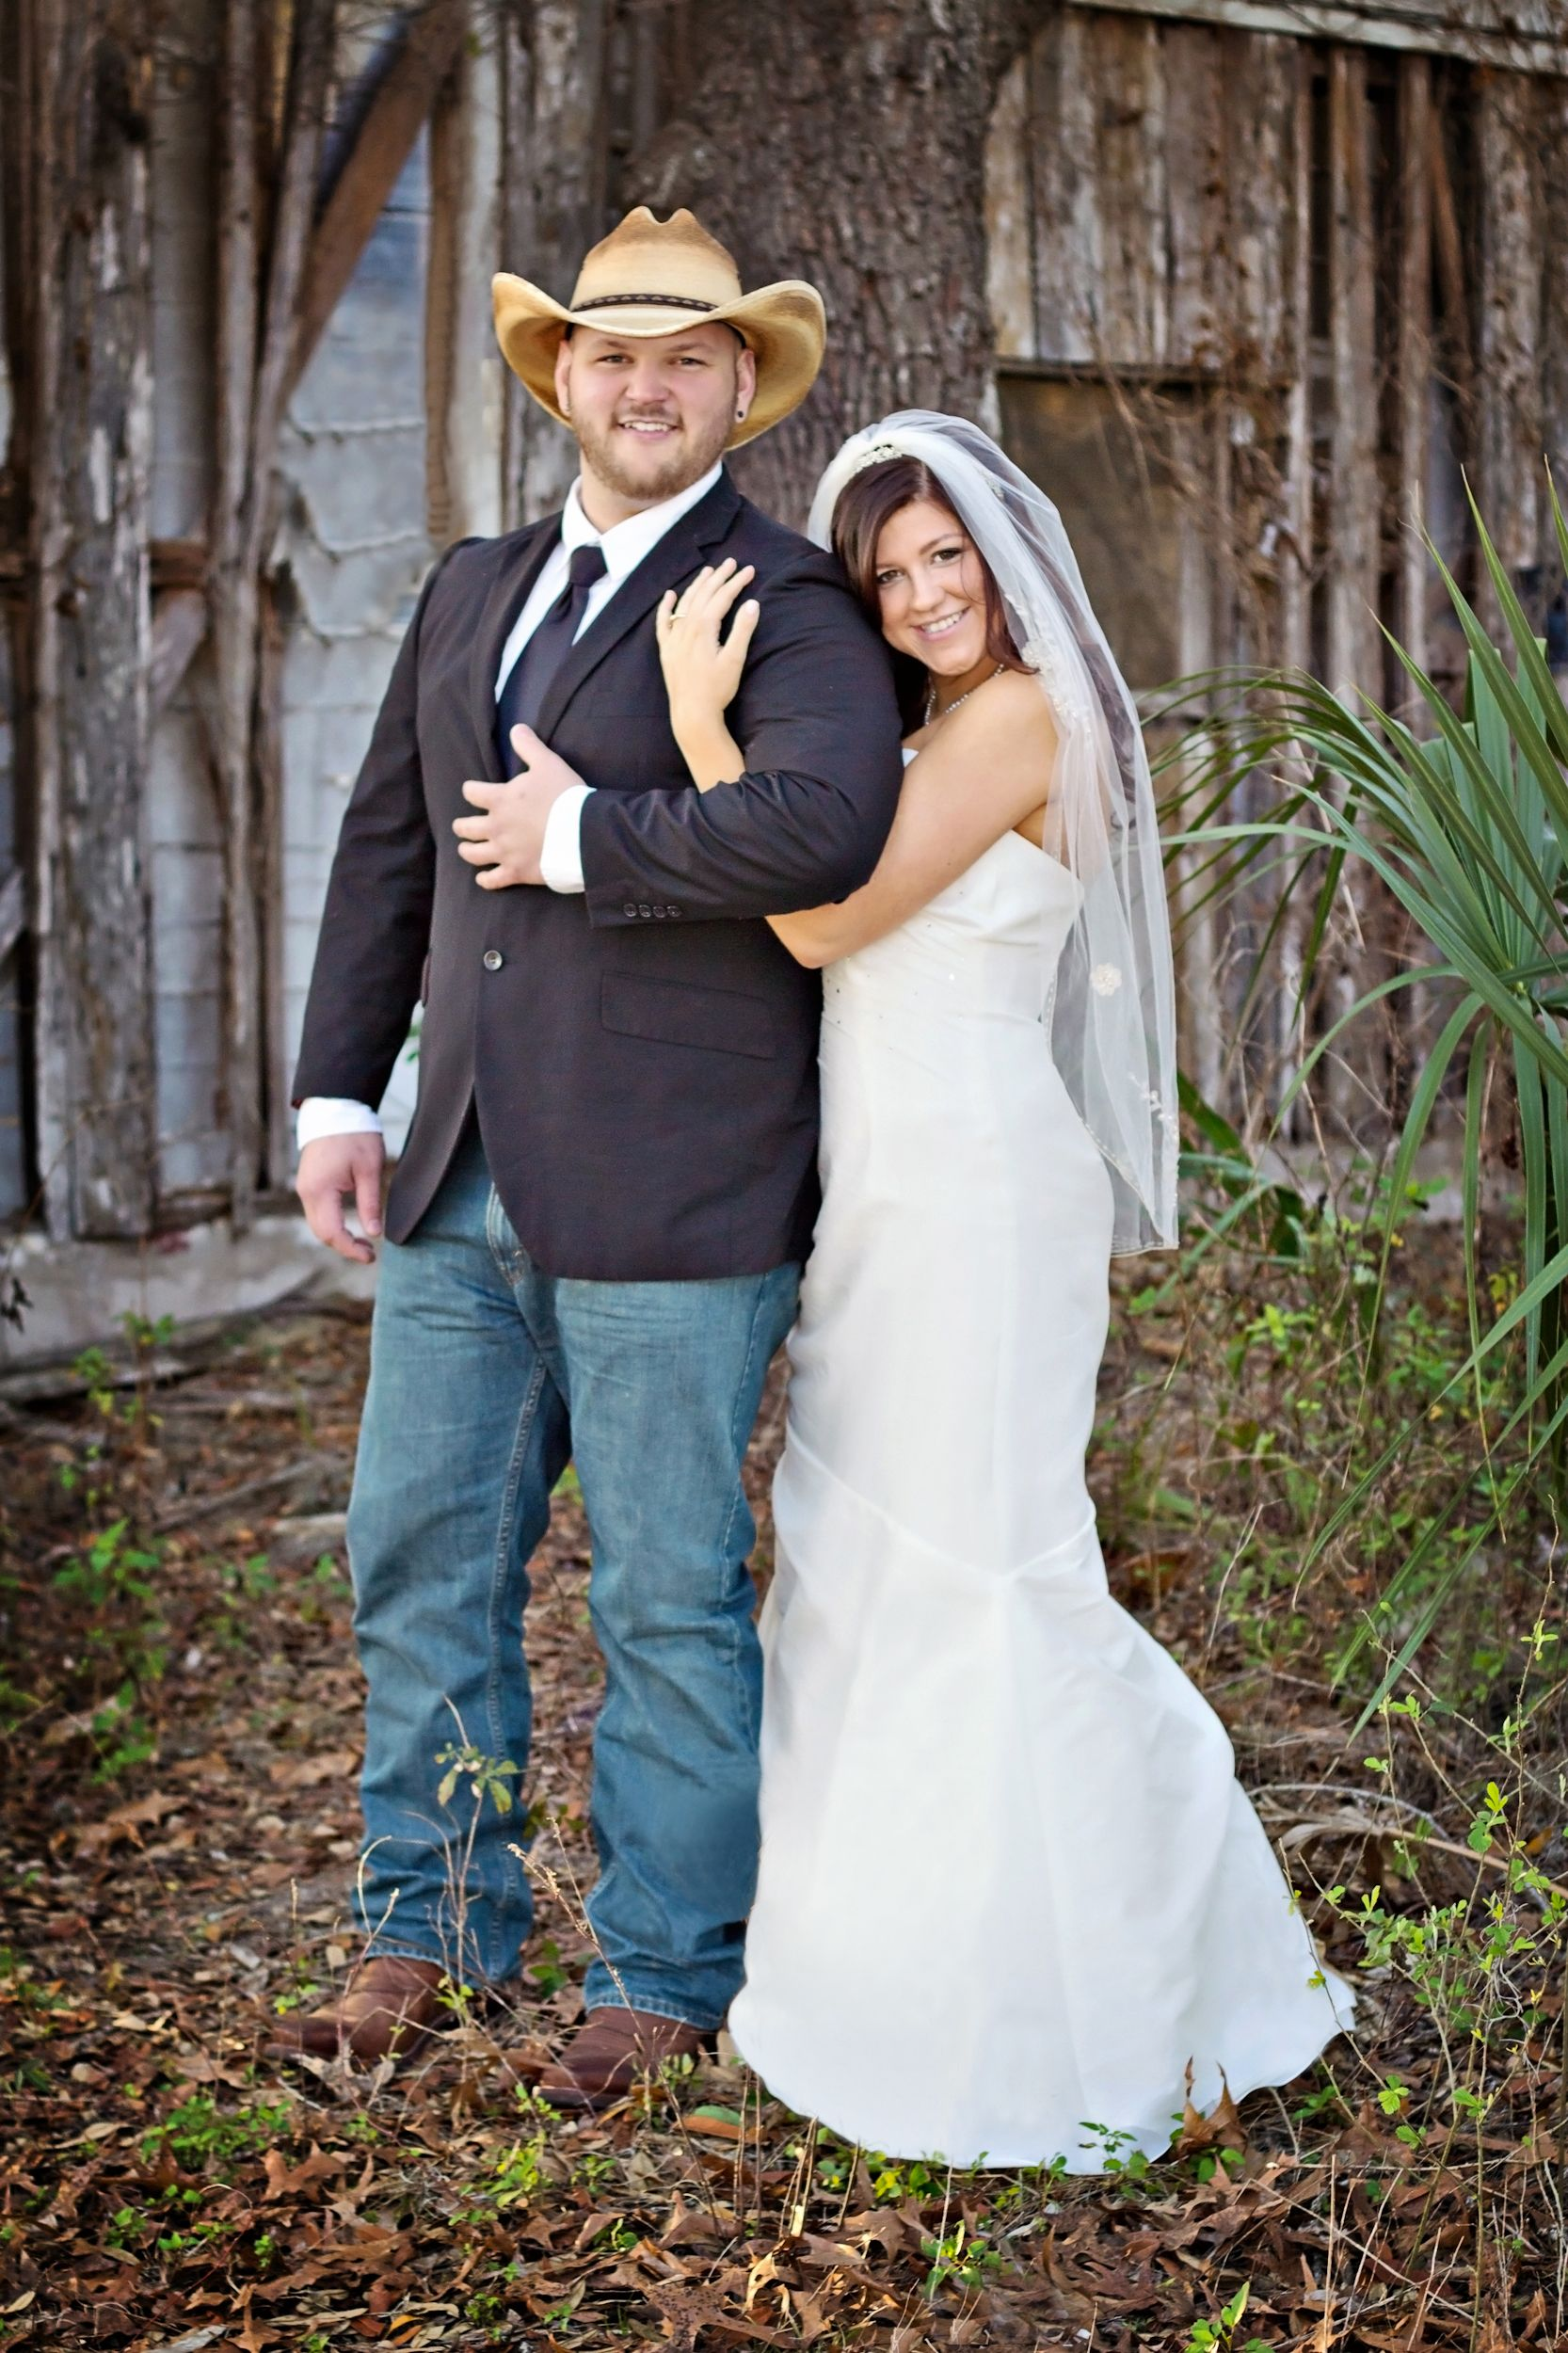 Country Wedding Complete With A Cowboy Groom 3 Cowboy Wedding Dress Groom Outfit Cowboy Groom